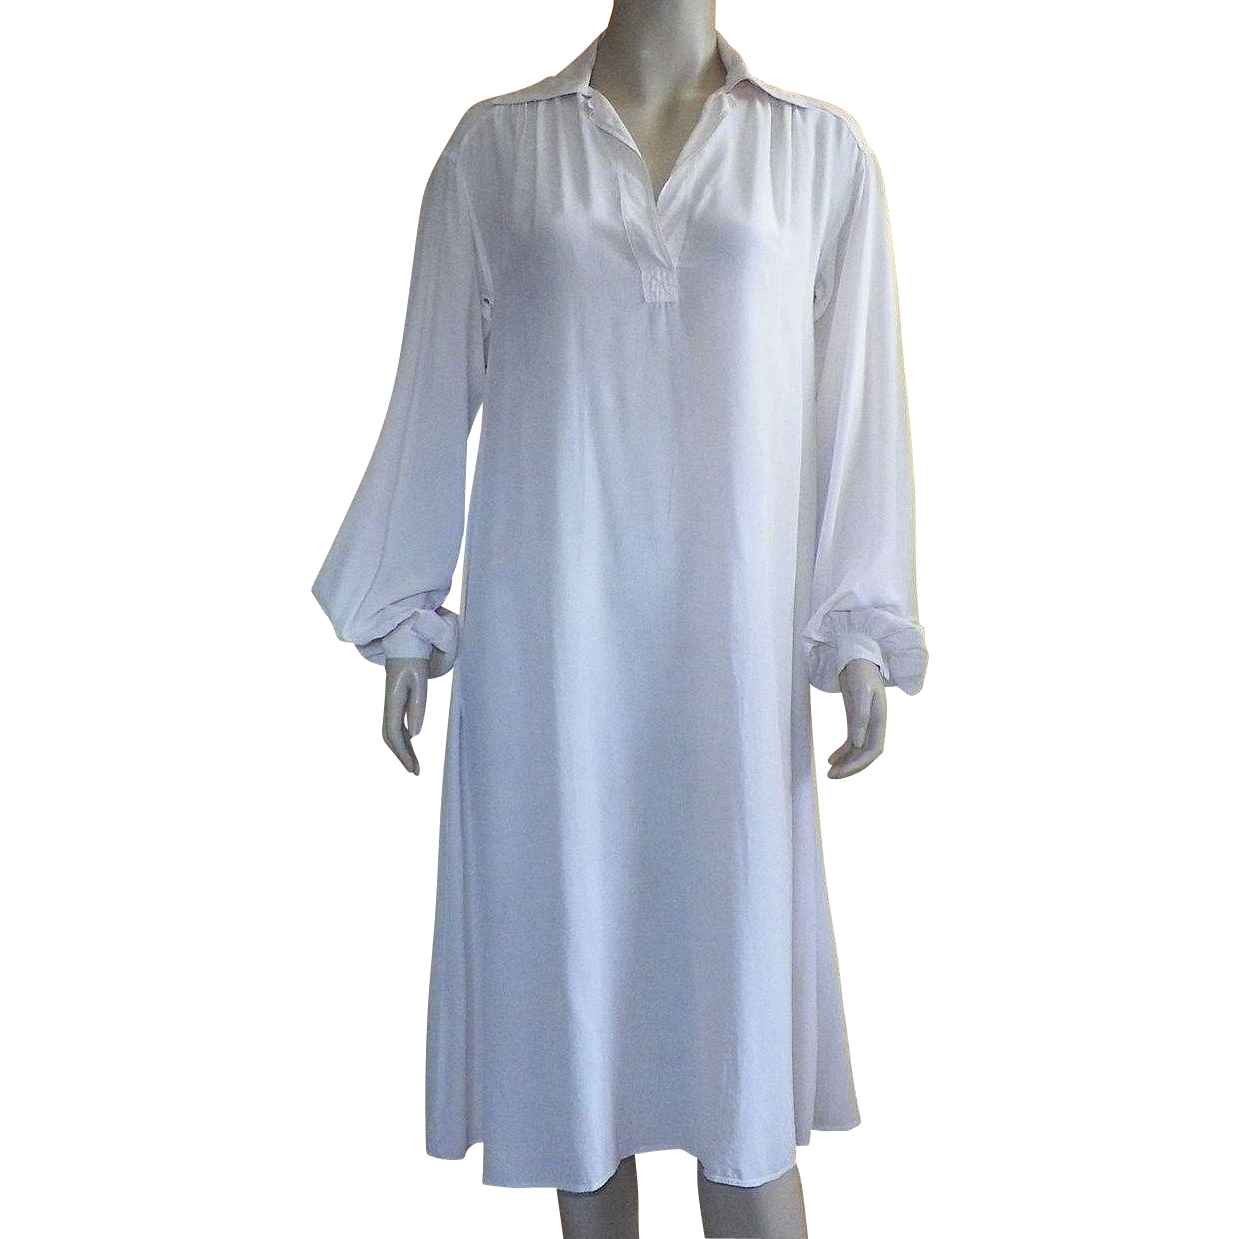 Vintage ivory silk night shirt nightgown dress ivory silk